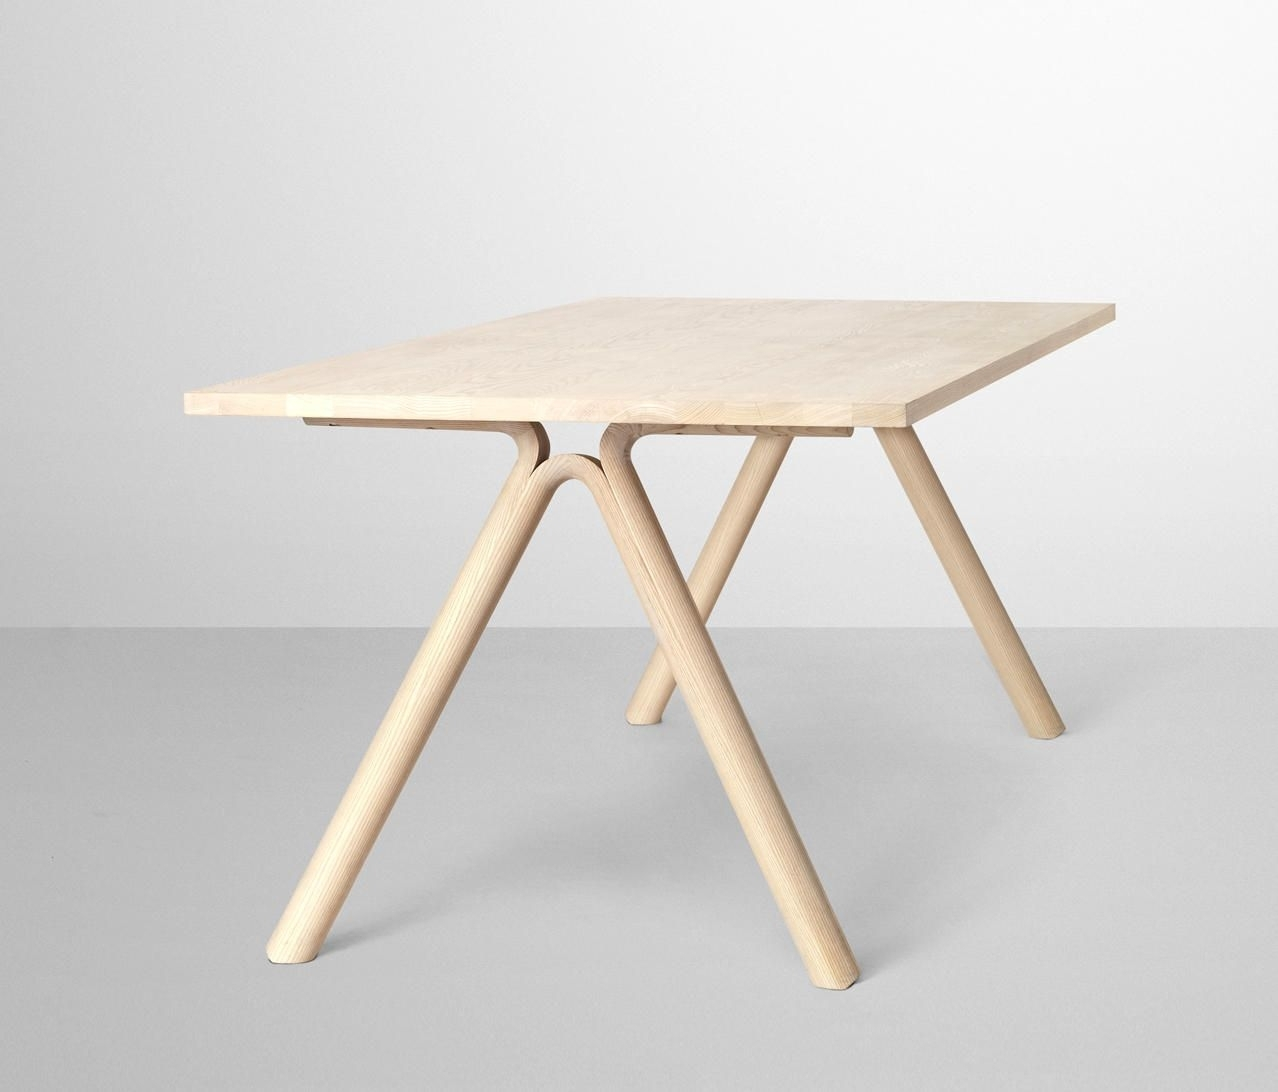 Image Result For Partridge Dining Tables | 1610_Add | Pinterest | Desks With Regard To Recent Partridge Dining Tables (Photo 14 of 20)